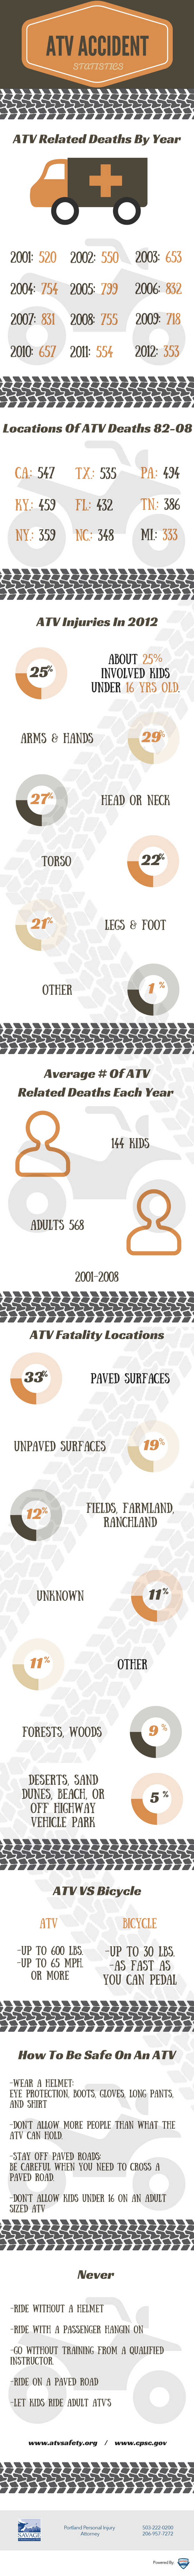 How often ATV accidents have deadly outcomes {Infographic}